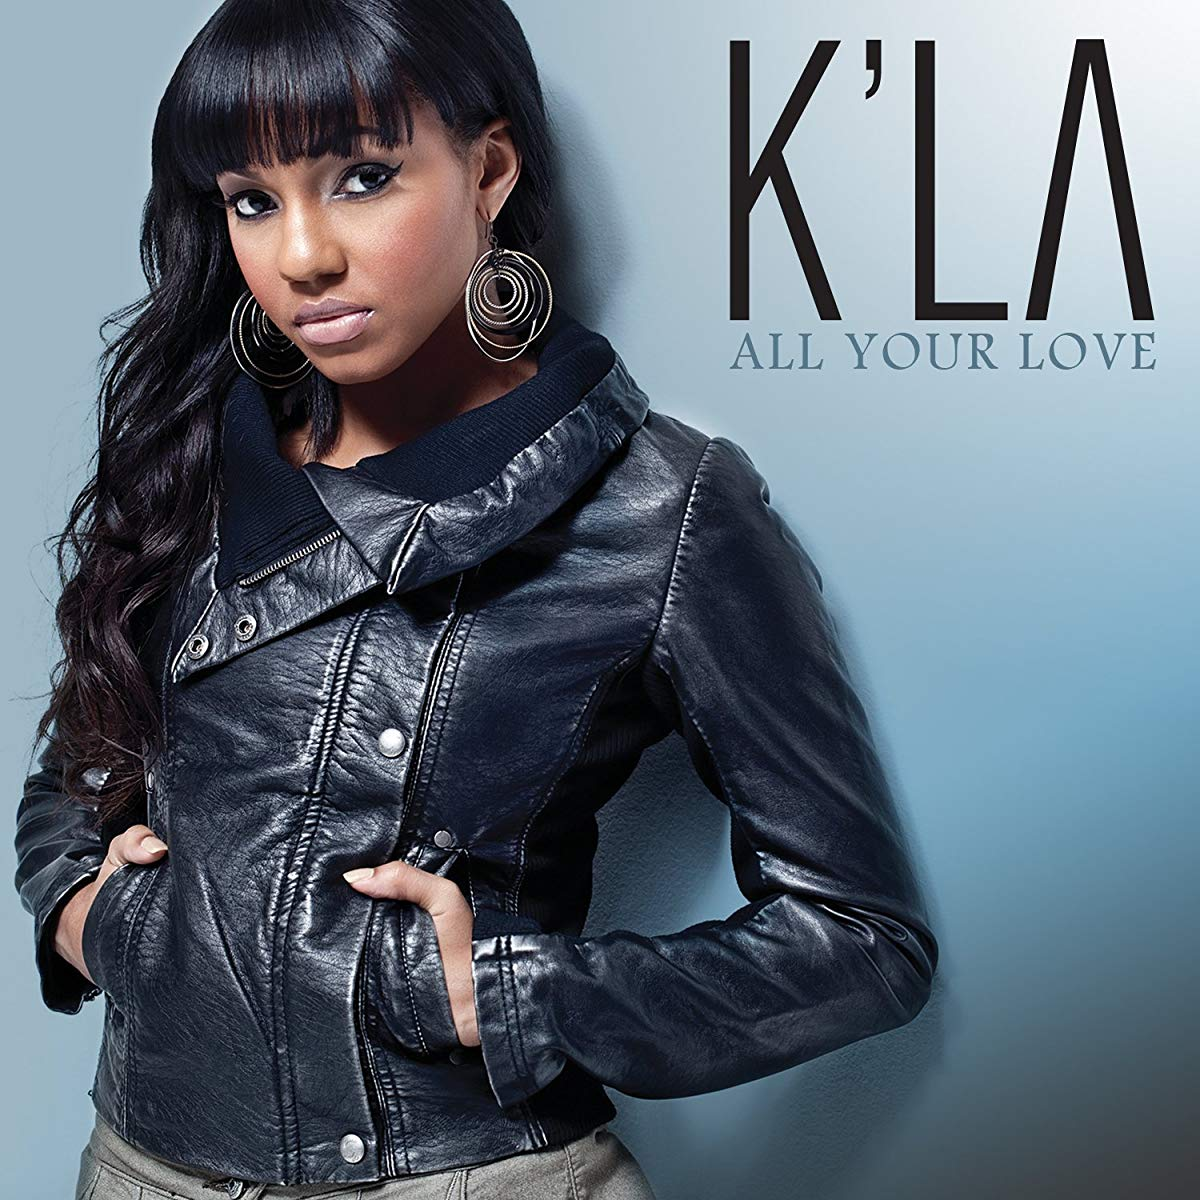 All Your Love de K'La, une reprise de Turn Your Lights Dow Low